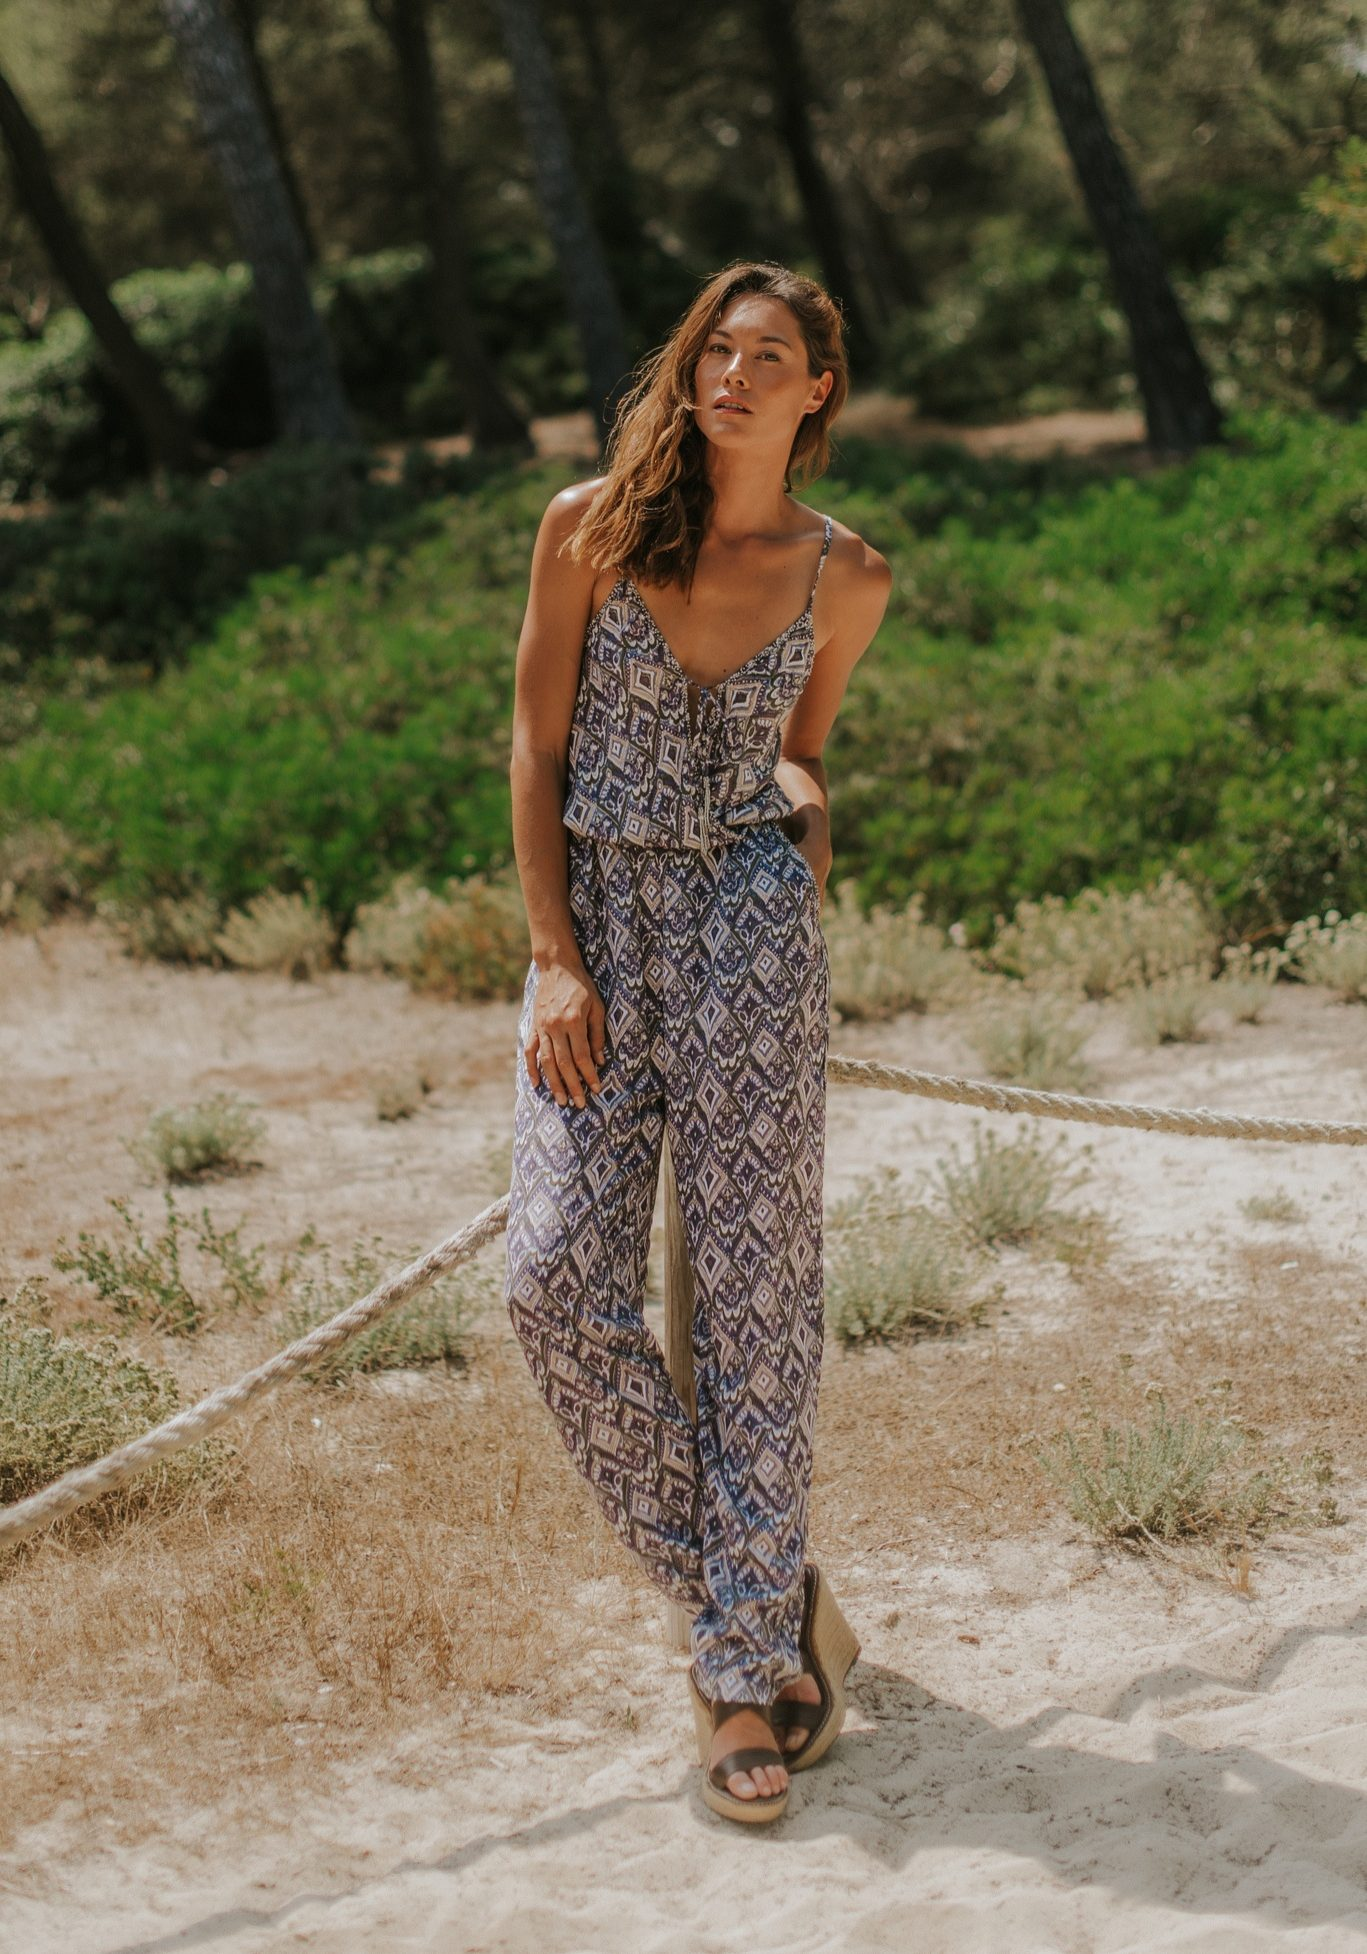 566N_GY_LILA LONG JUMPSUIT 00005